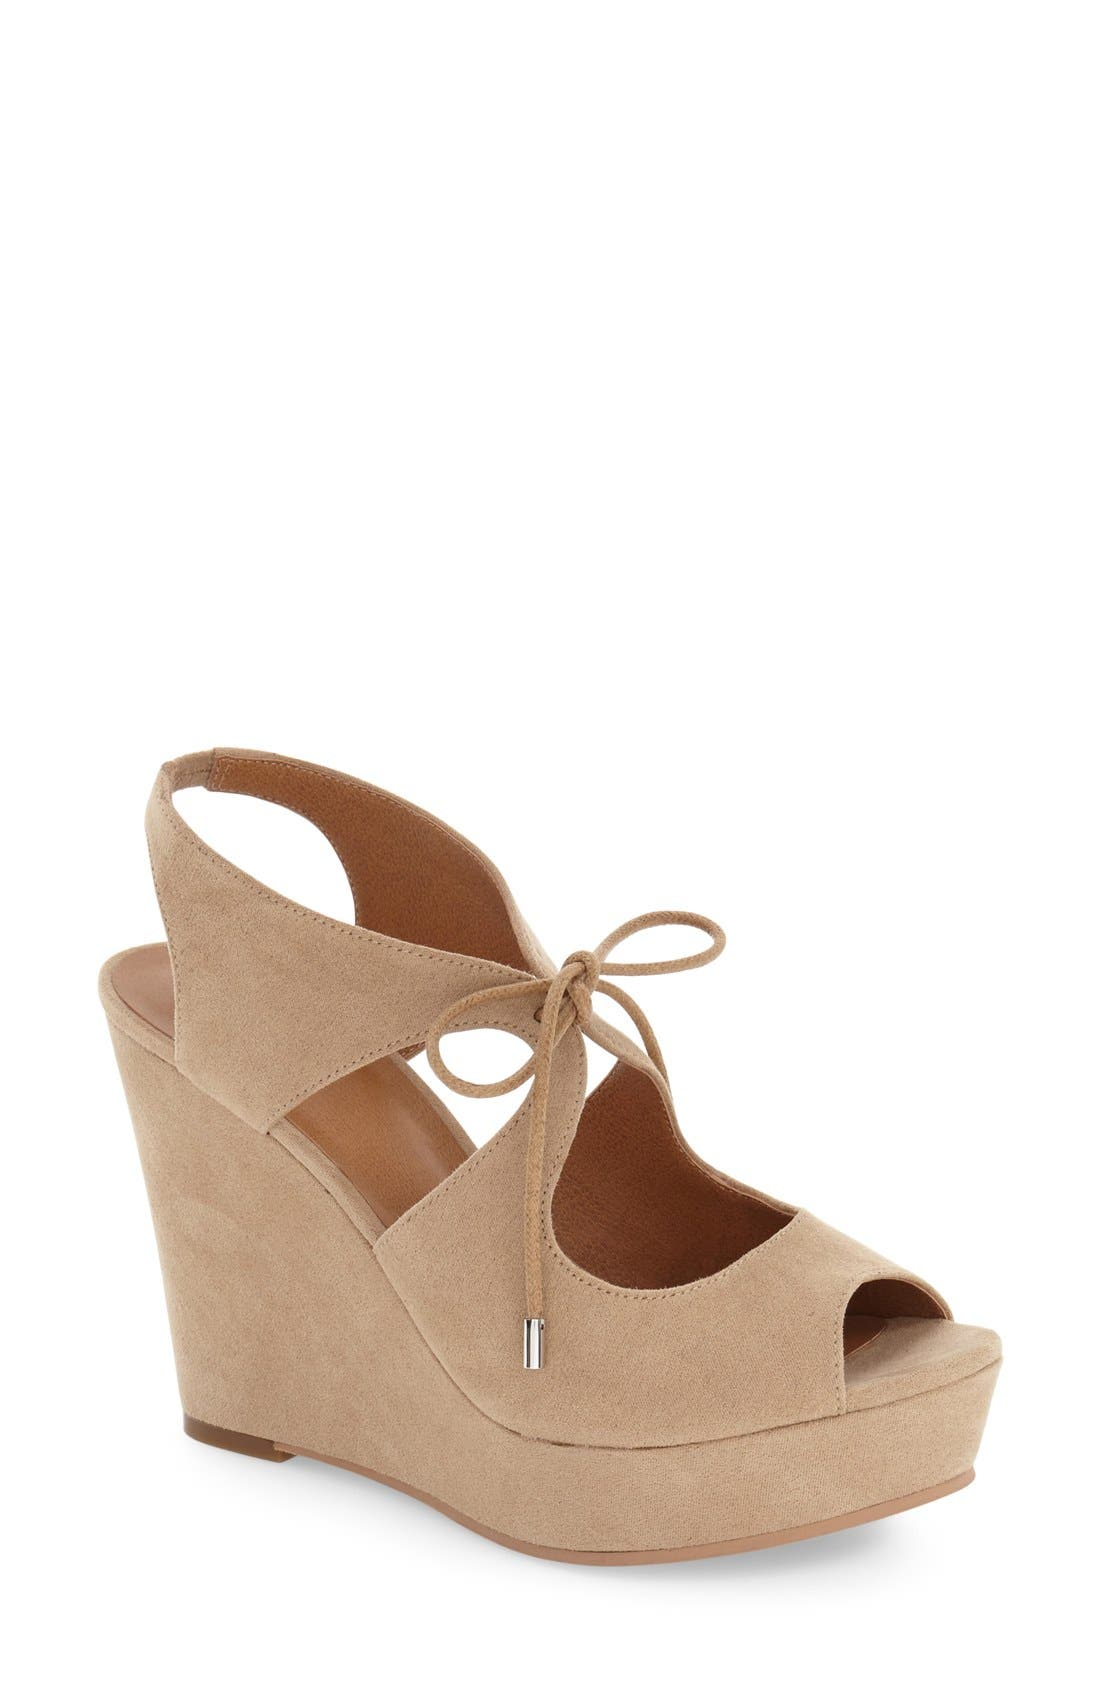 'Solar' Platform Wedge Sandal,                         Main,                         color, Light Taupe Faux Suede